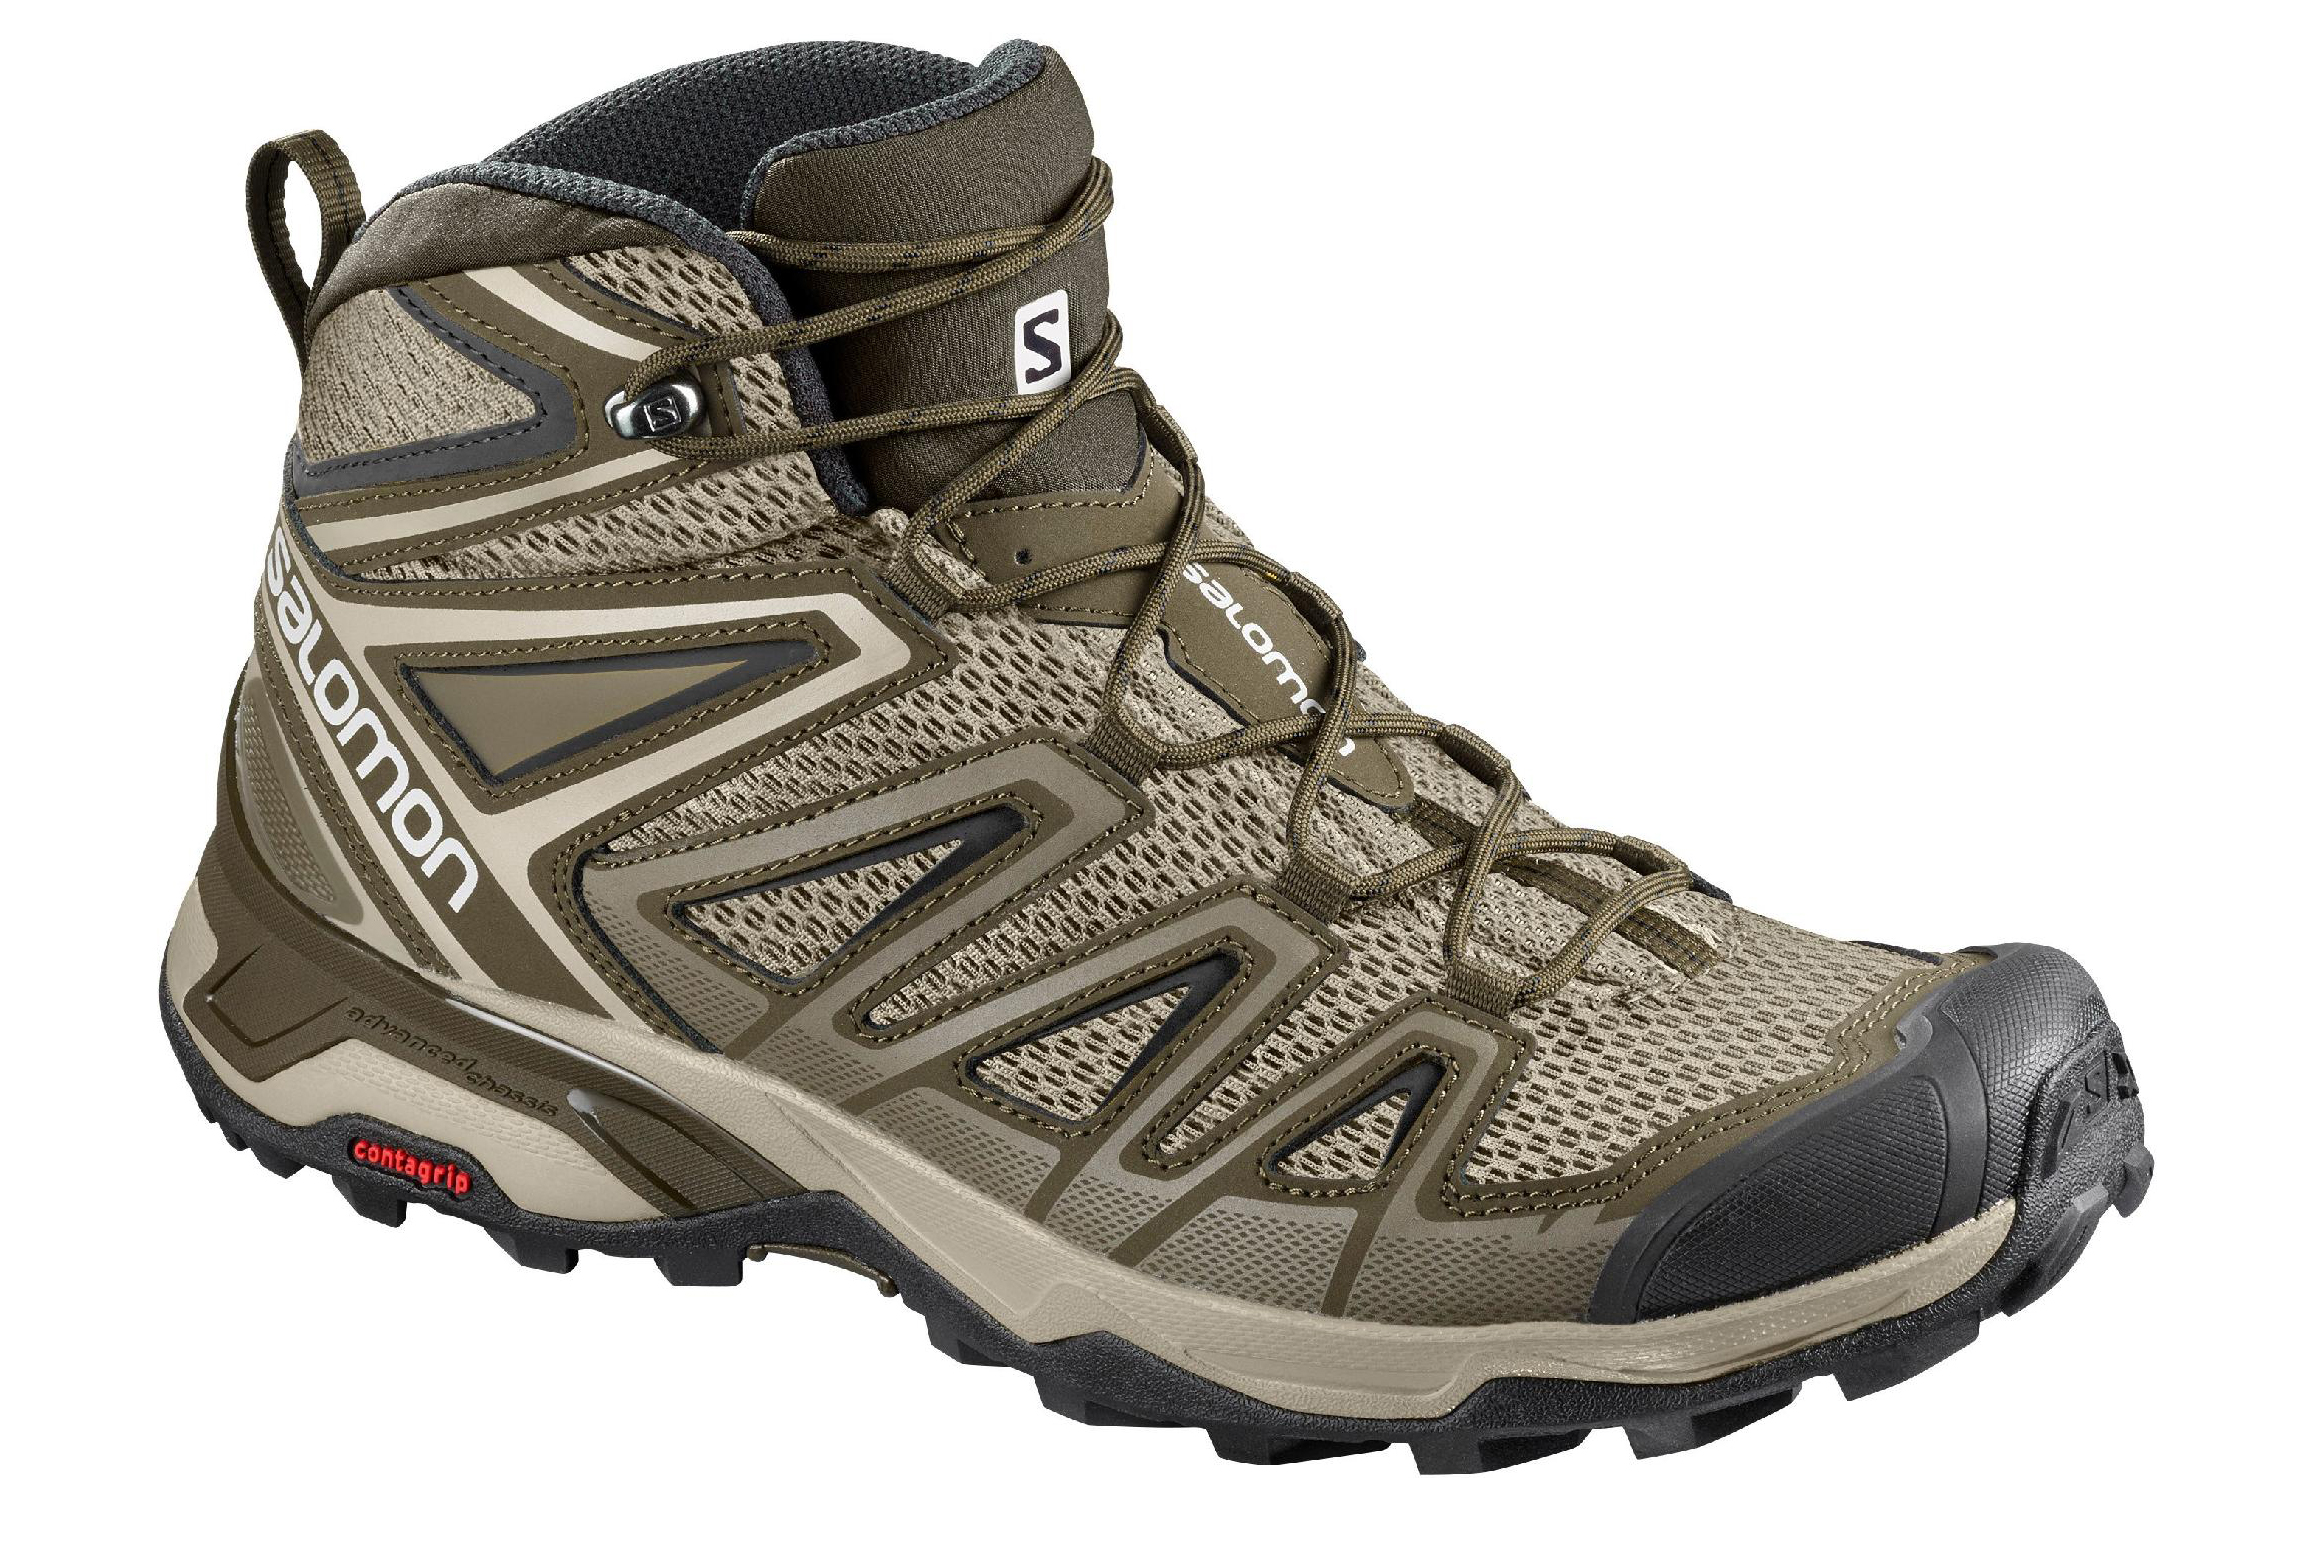 sale Salomon x ultra aero hiking shoe